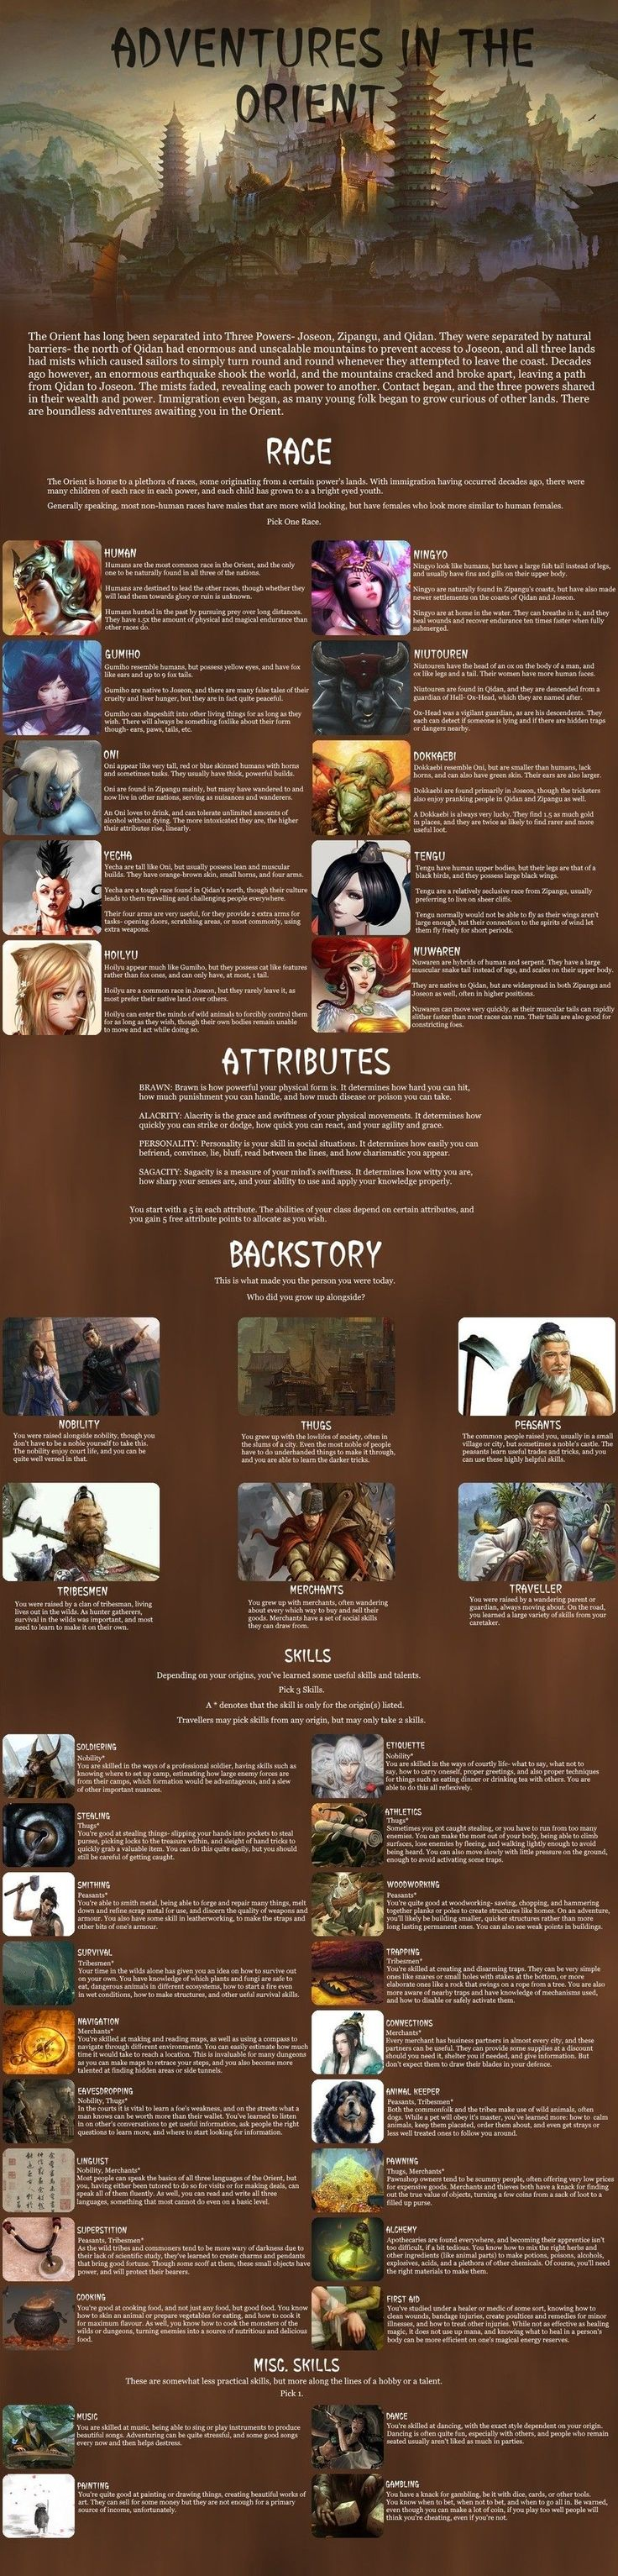 Adventures in the Orient CYOA